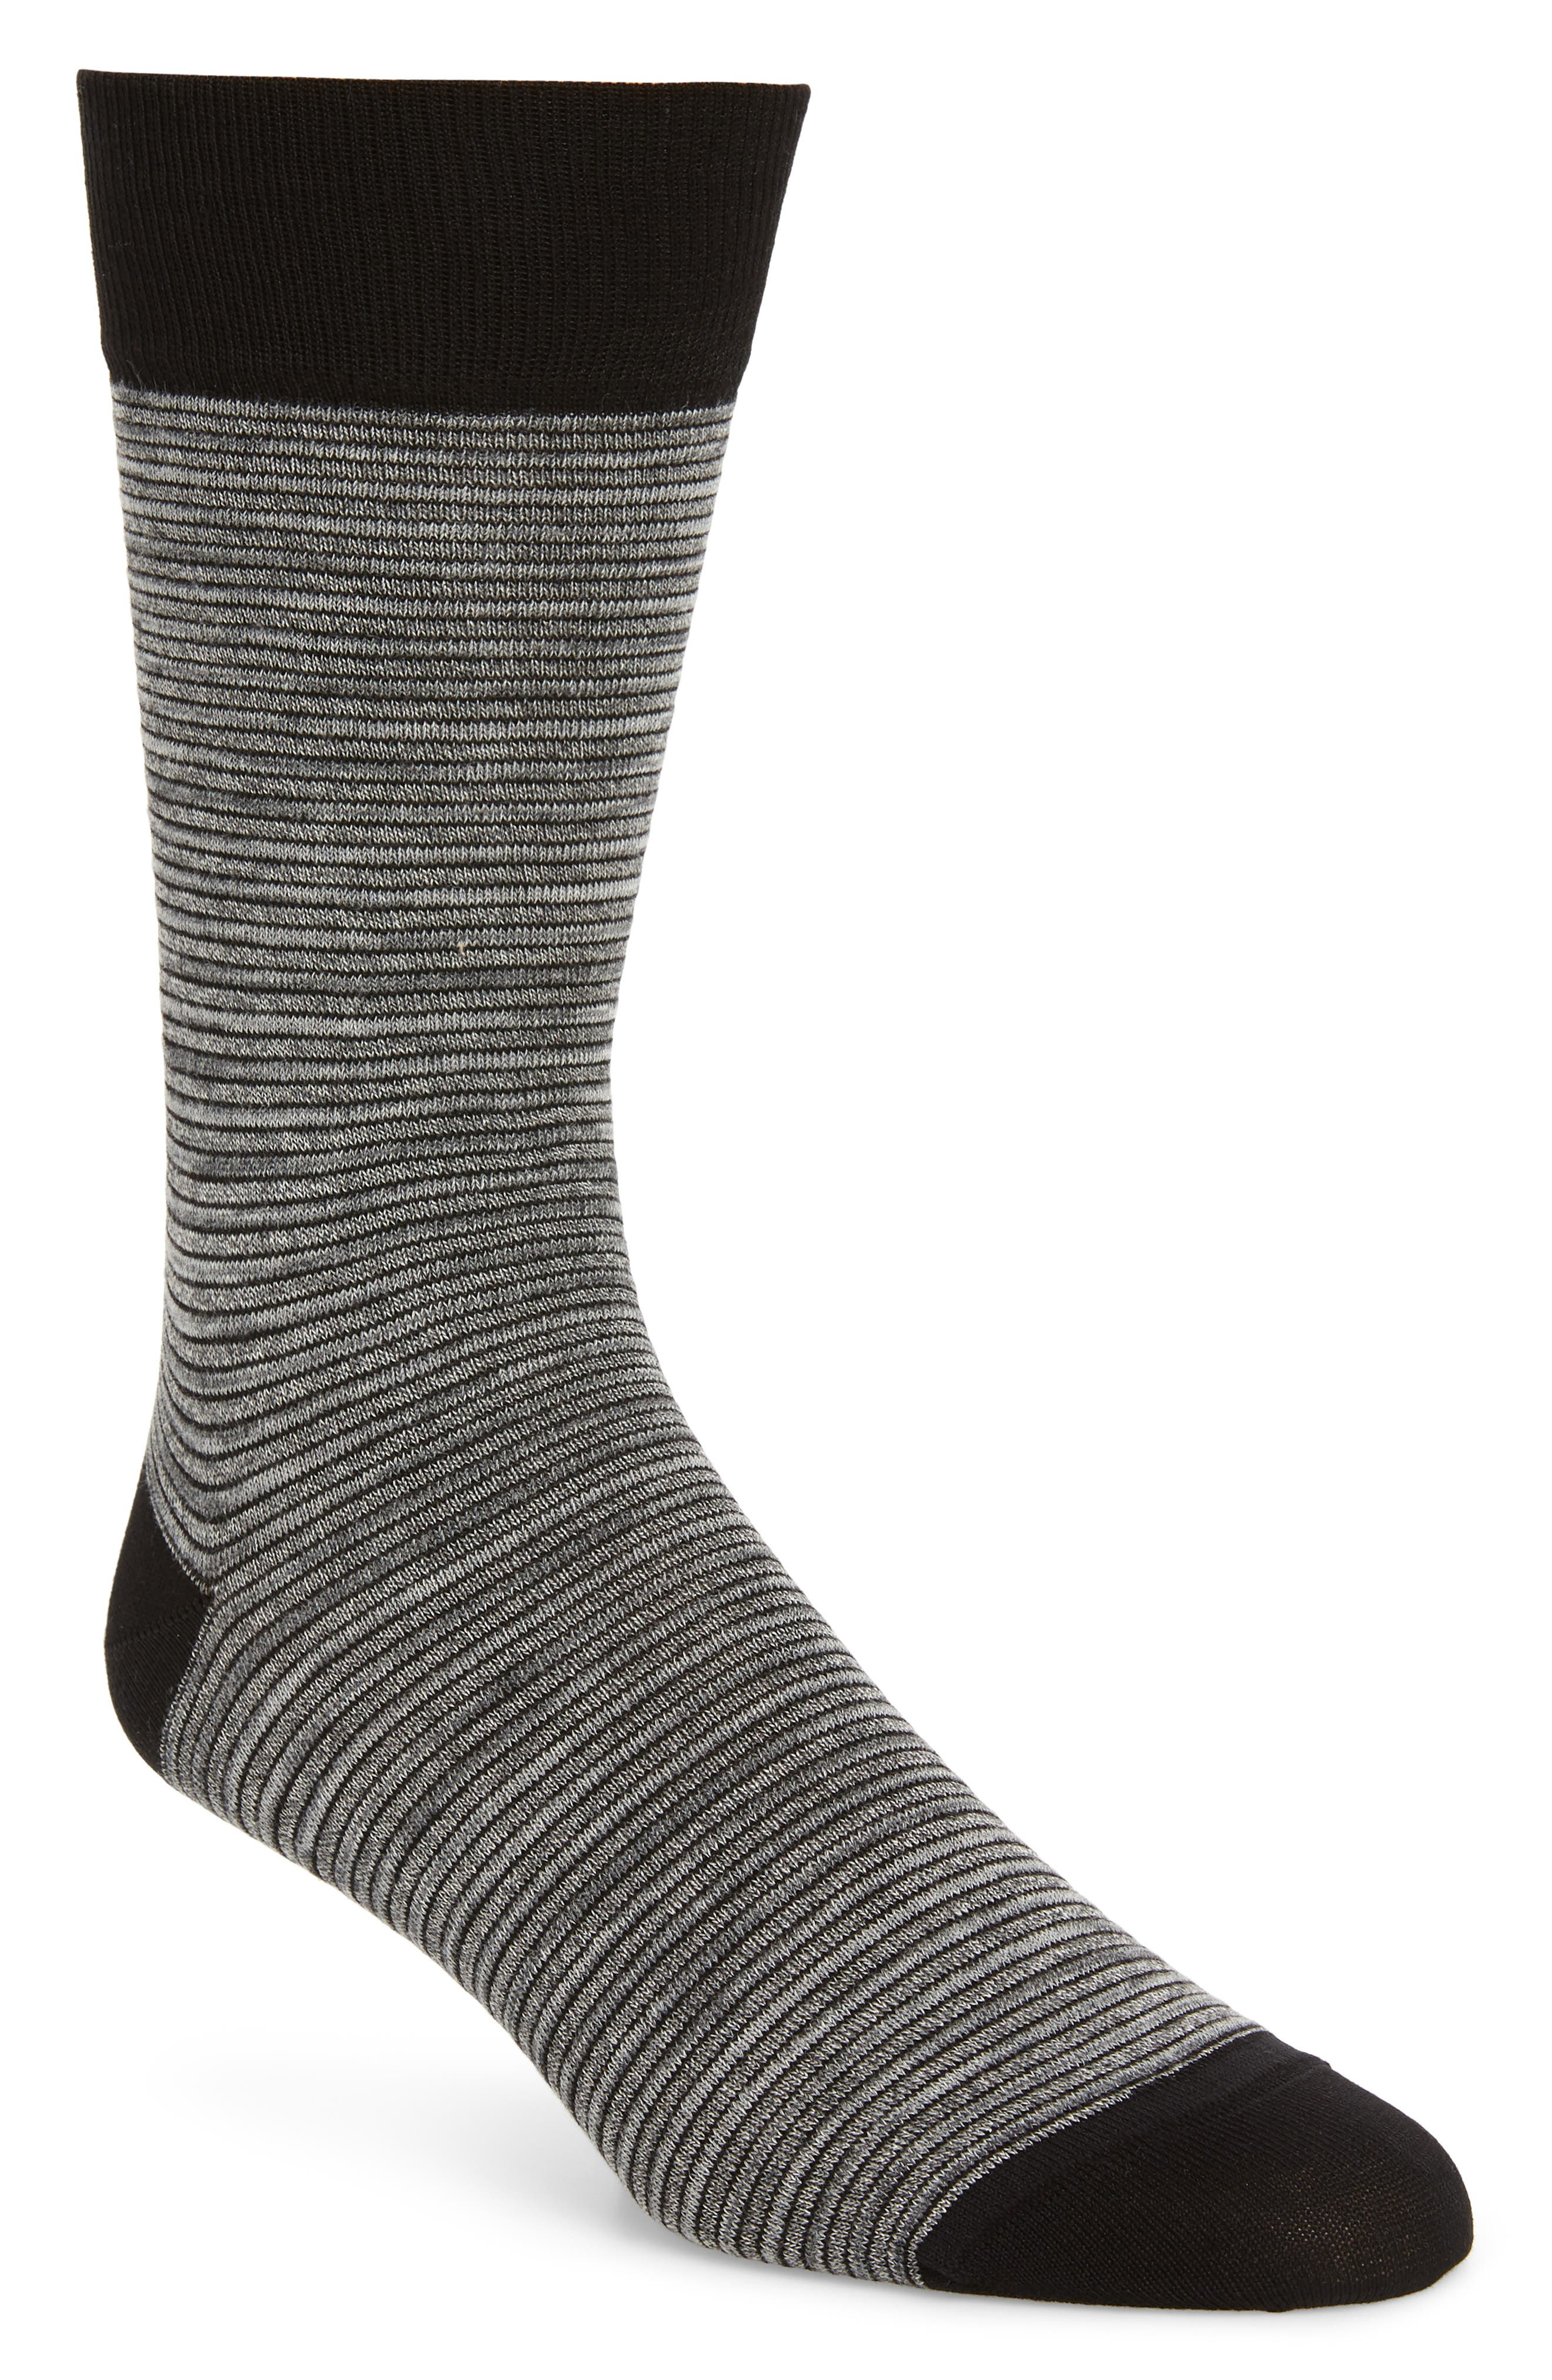 Stripe Socks,                             Main thumbnail 1, color,                             030